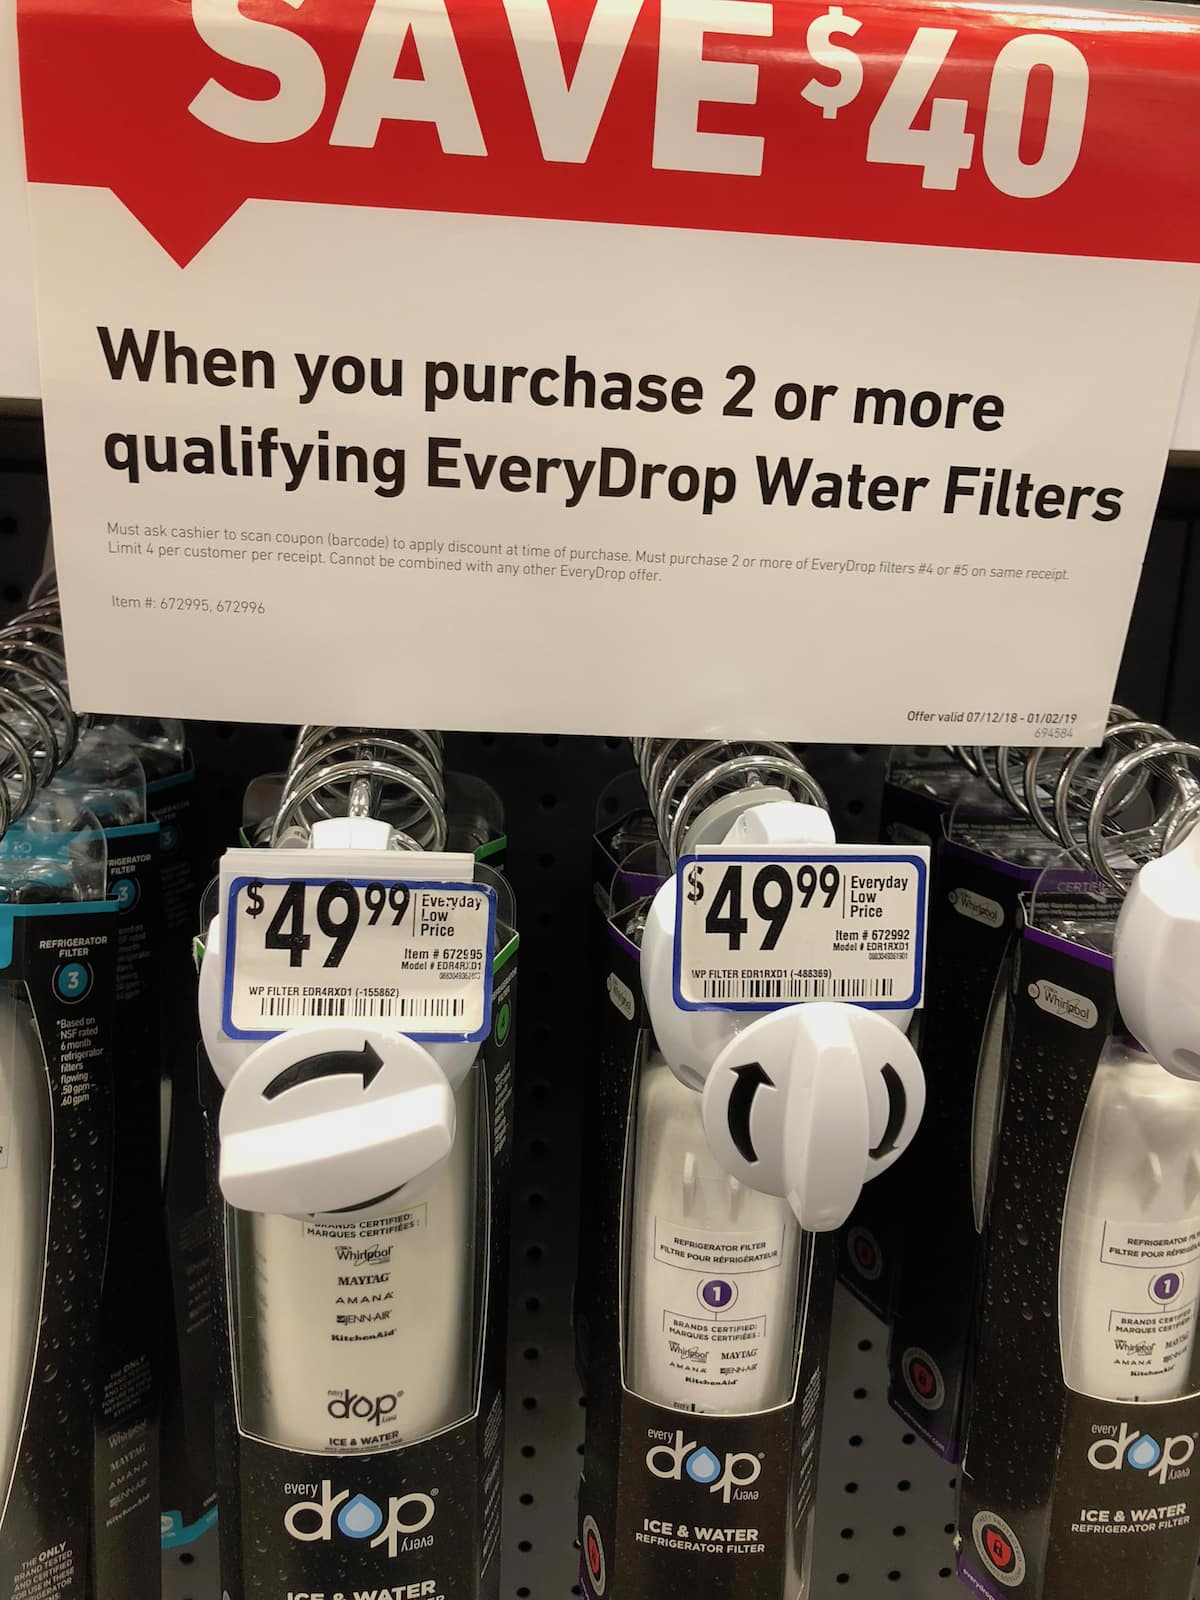 EveryDrop by Whirlpool Water Filter 4 & Filter 5 = $29 99/ea after